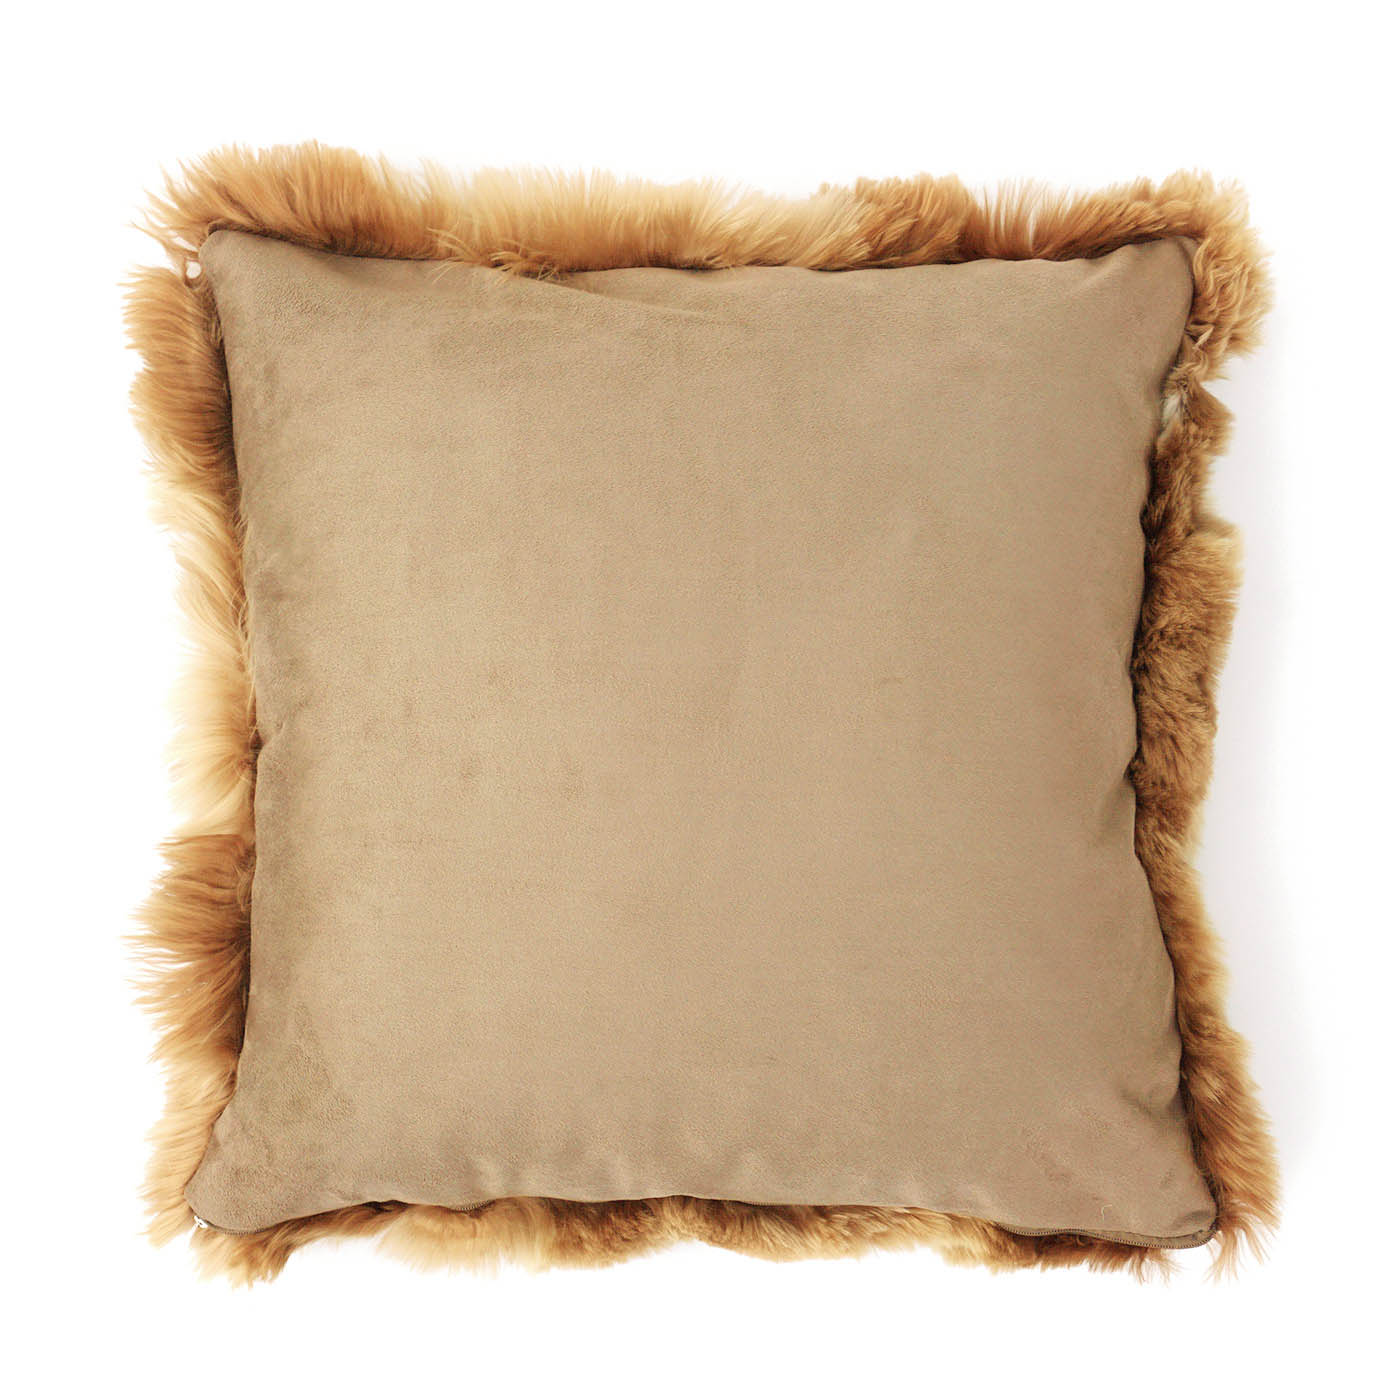 BROWN LUXURY ALPACA FUR CUSHION